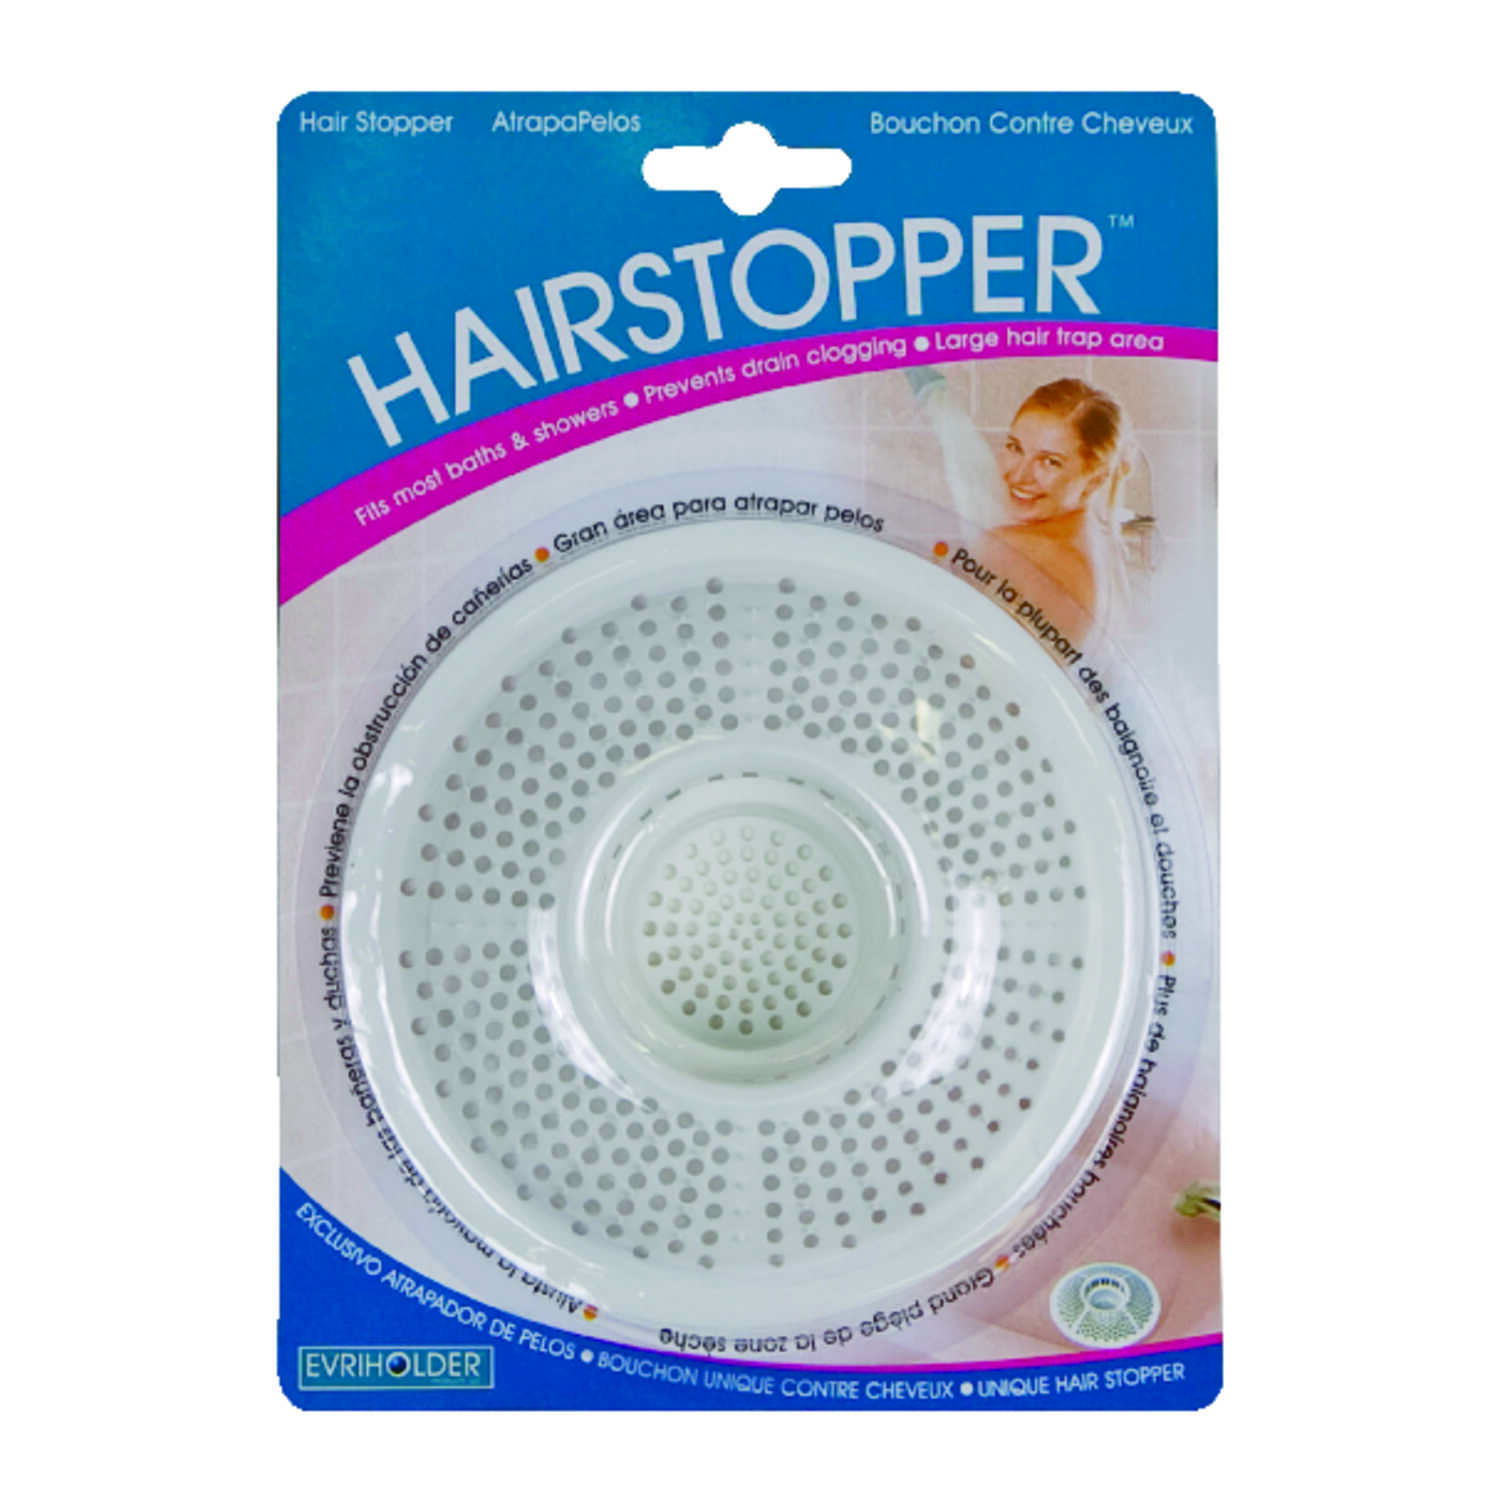 Evriholder  Hairstopper  Household  Bath Strainer  Plastic  1 pk